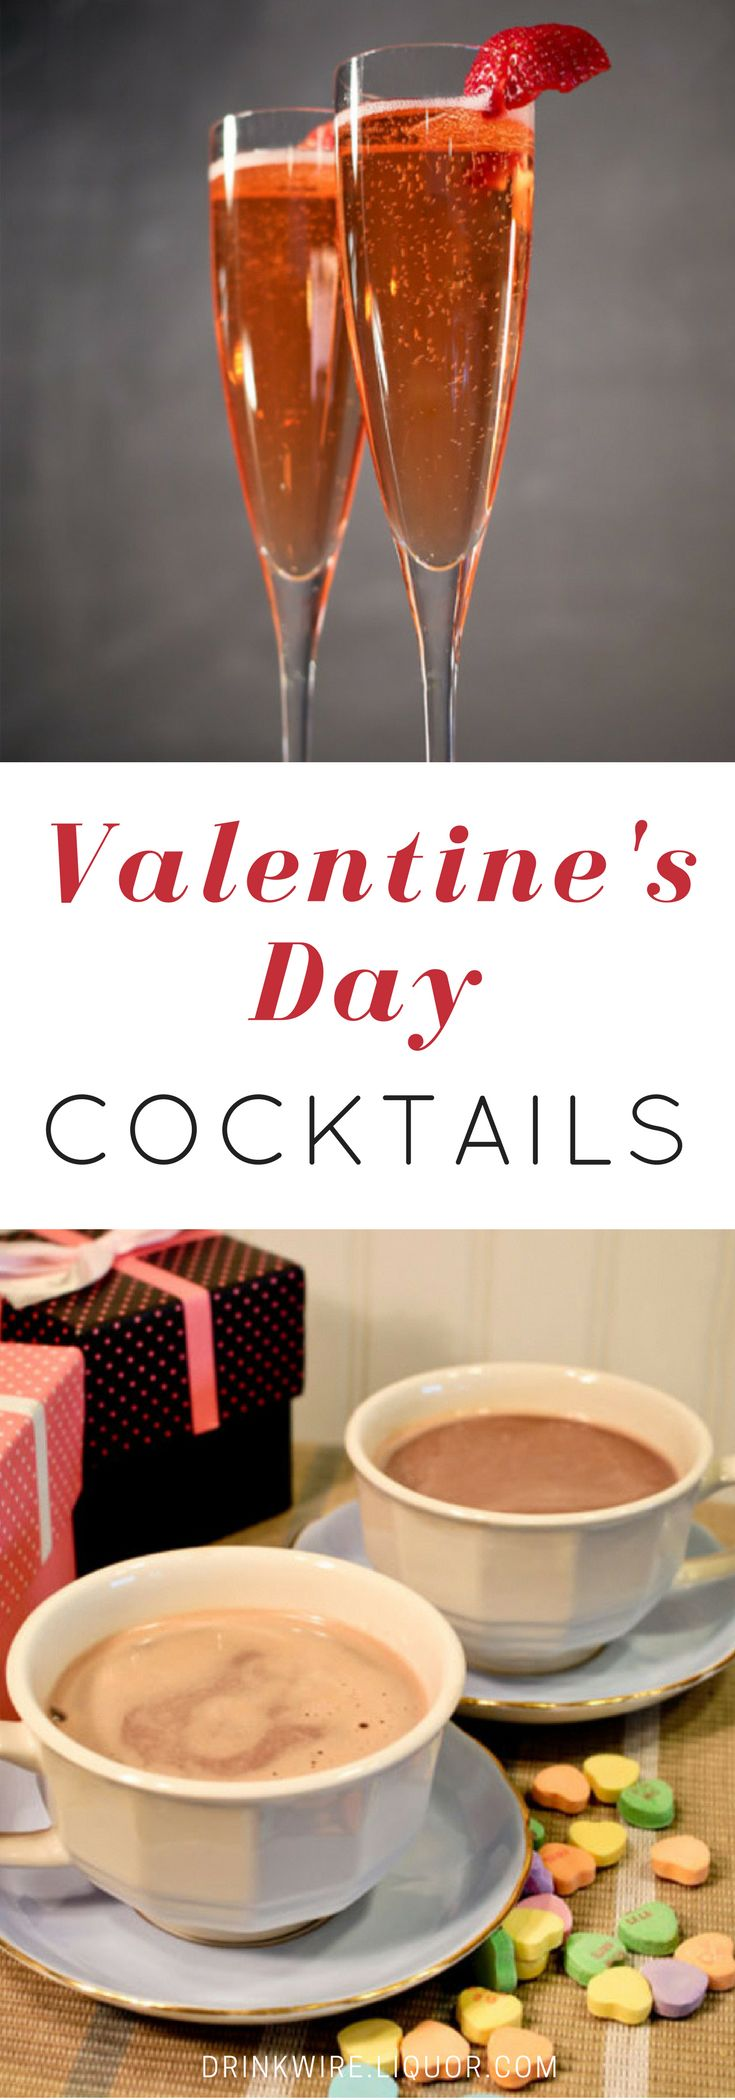 Cocktails and chill? Bookmark this for a variety of Valentine's Day cocktail recipes.